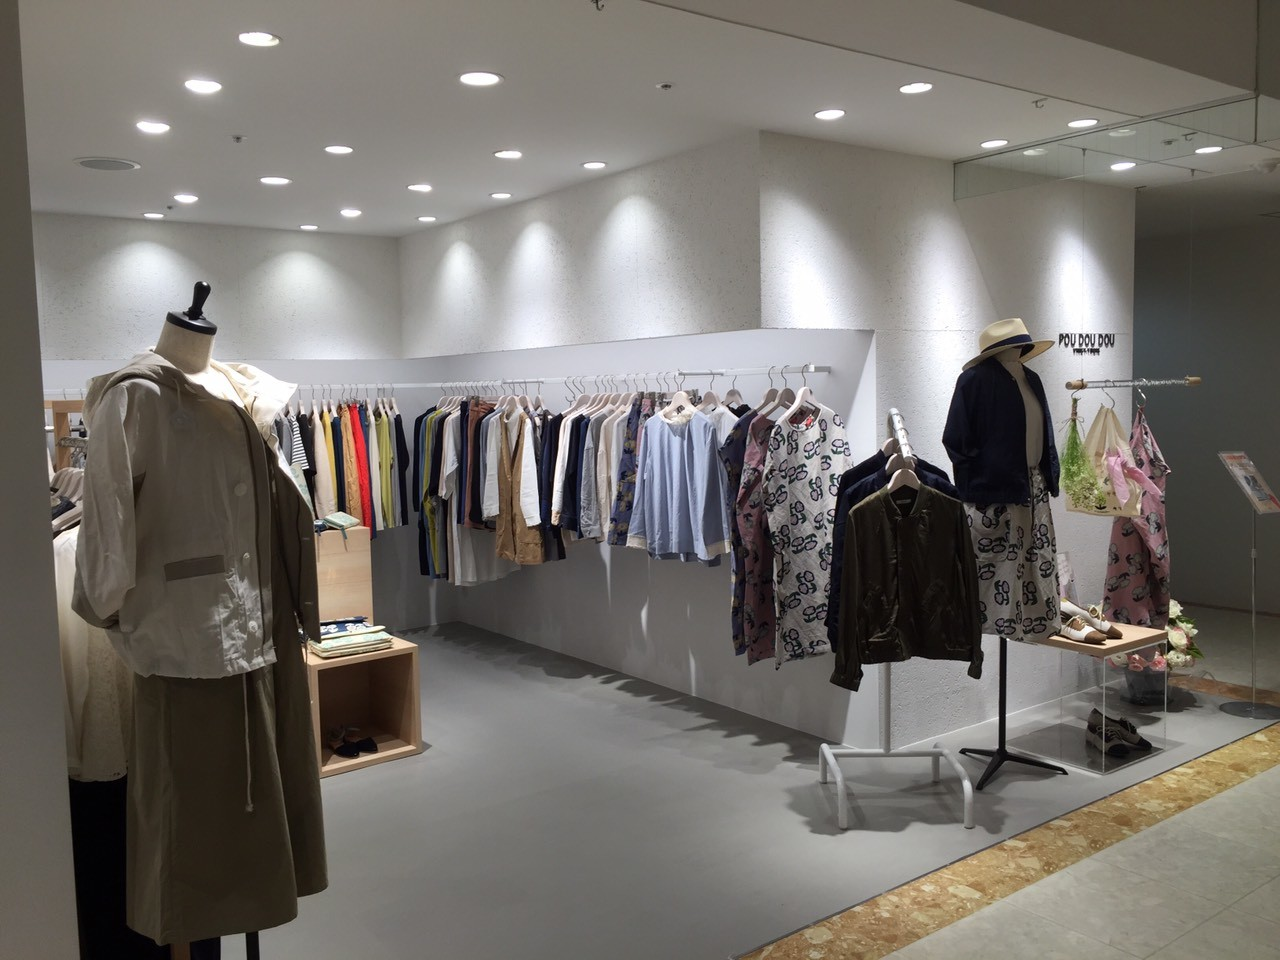 POUDOUDOU名古屋パルコ店様 【新装/設計】